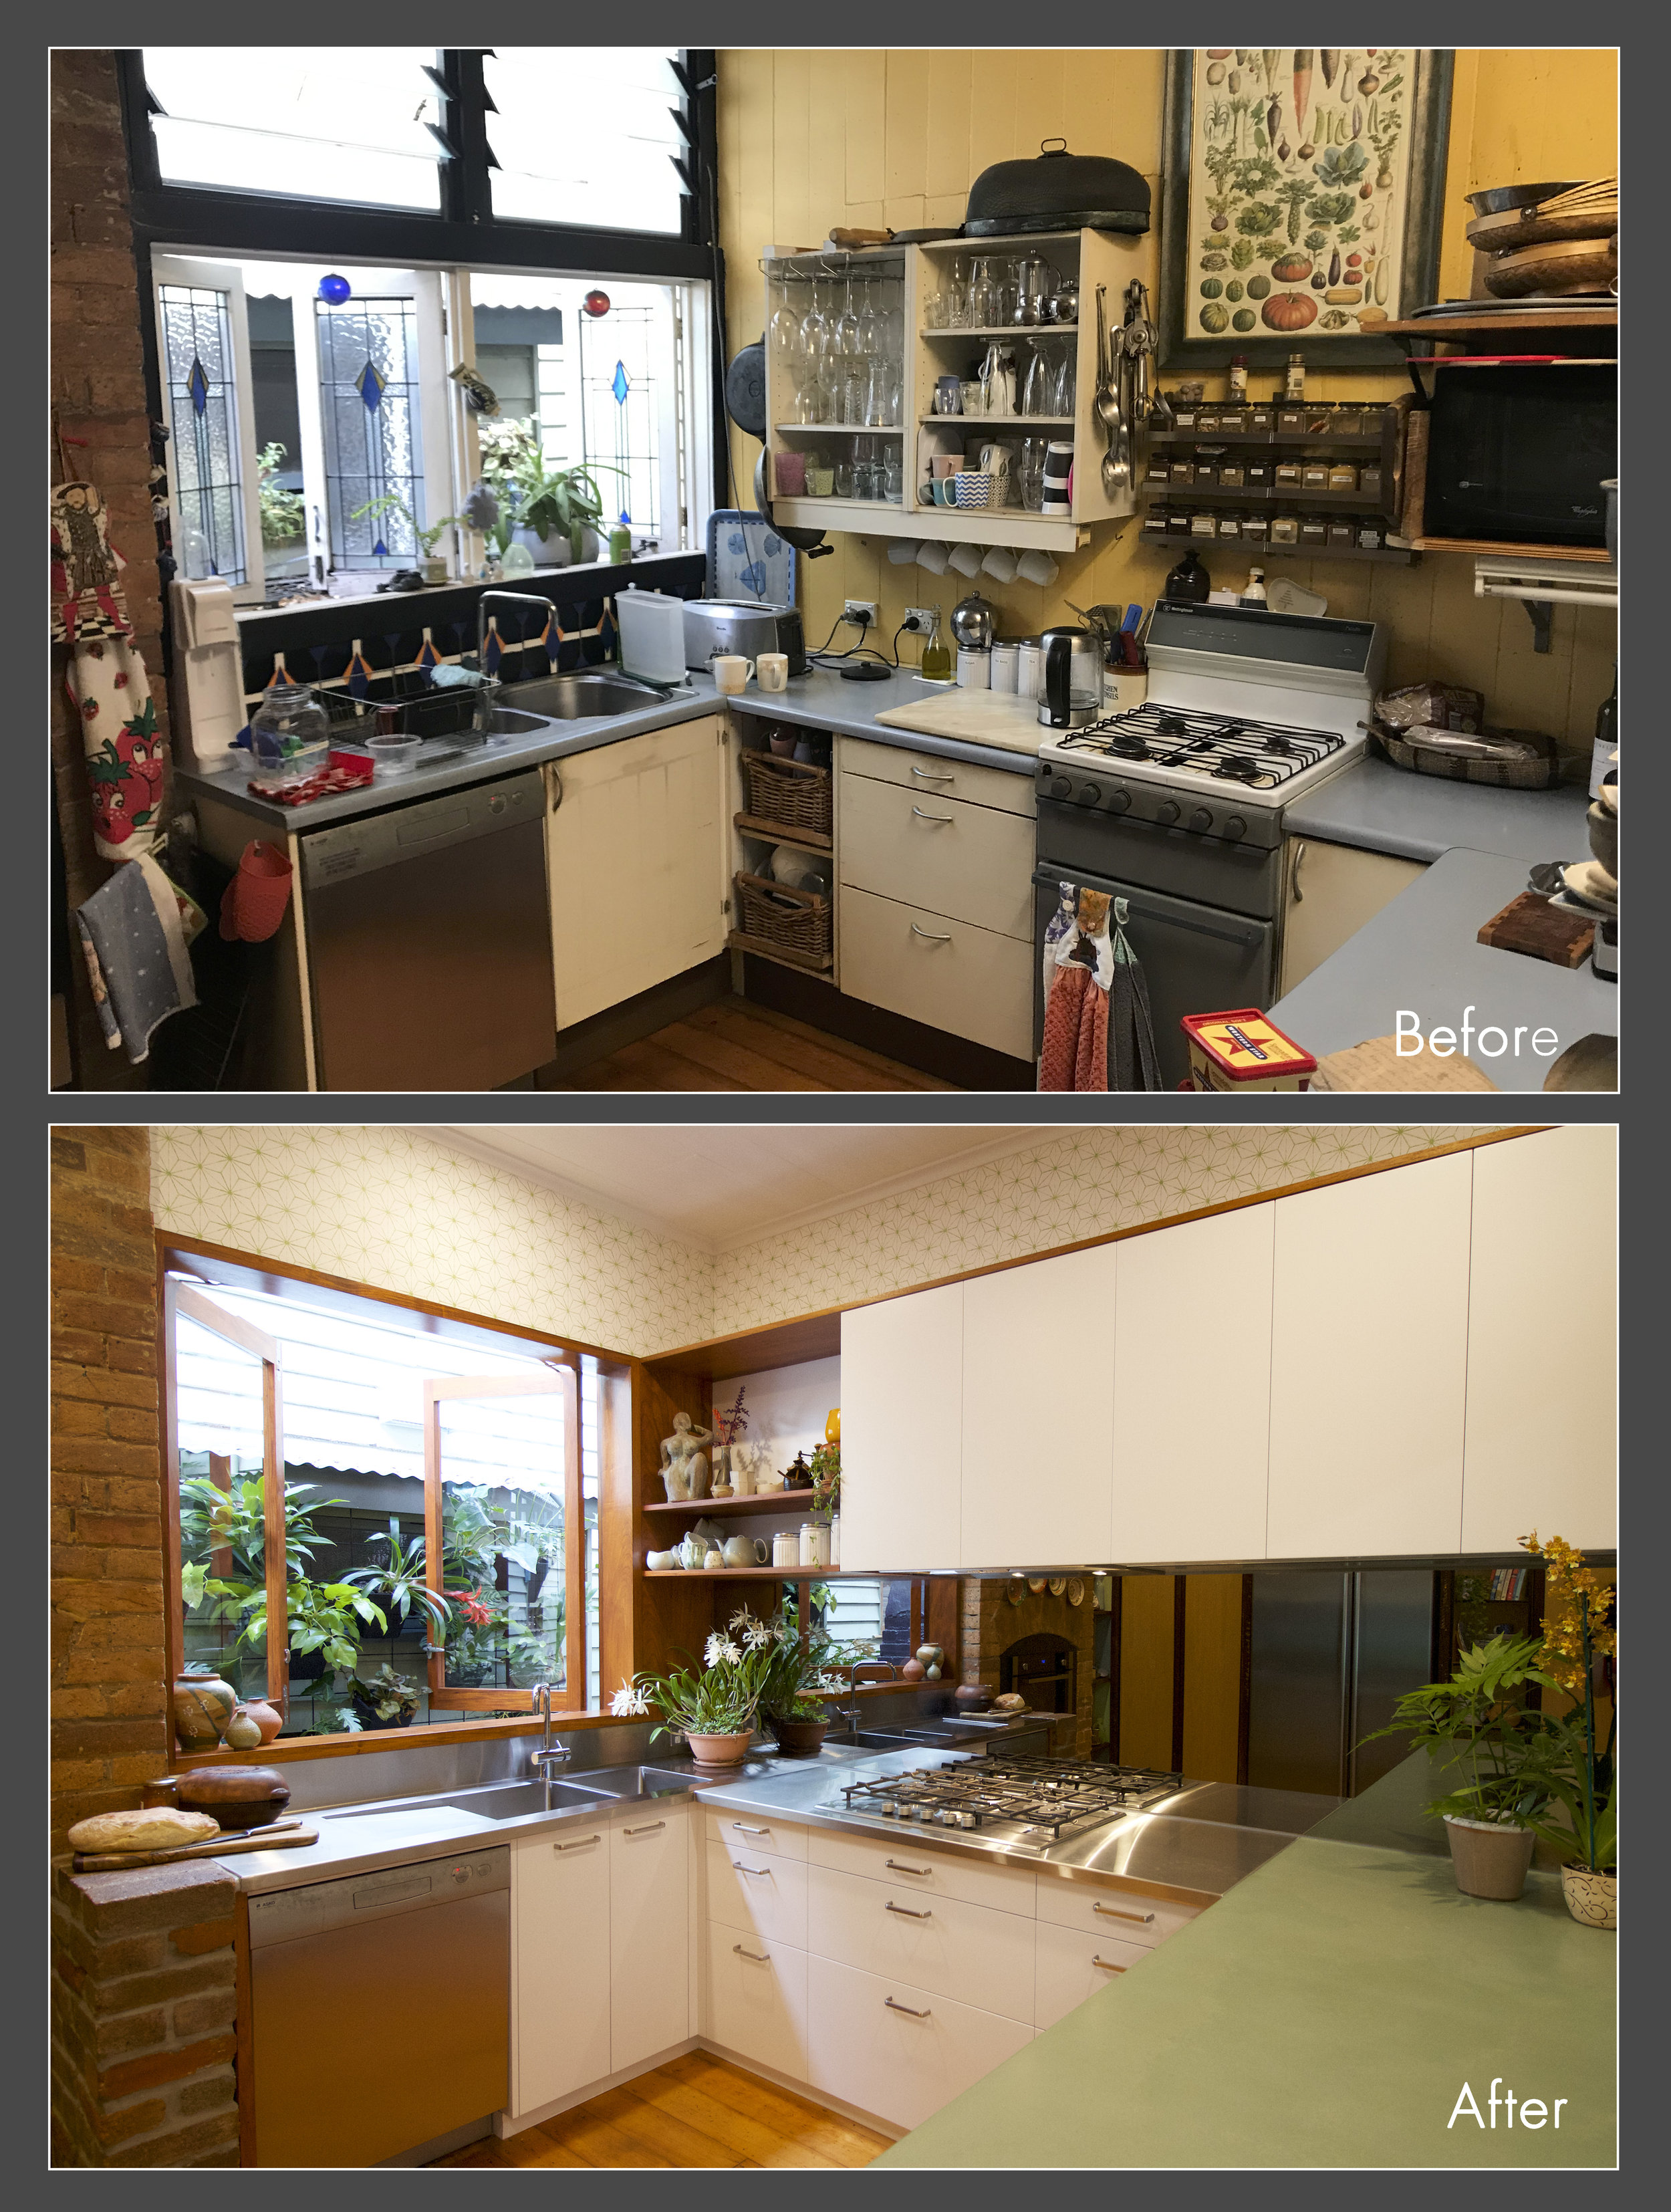 Julia St Kitchen - Before and After.jpg